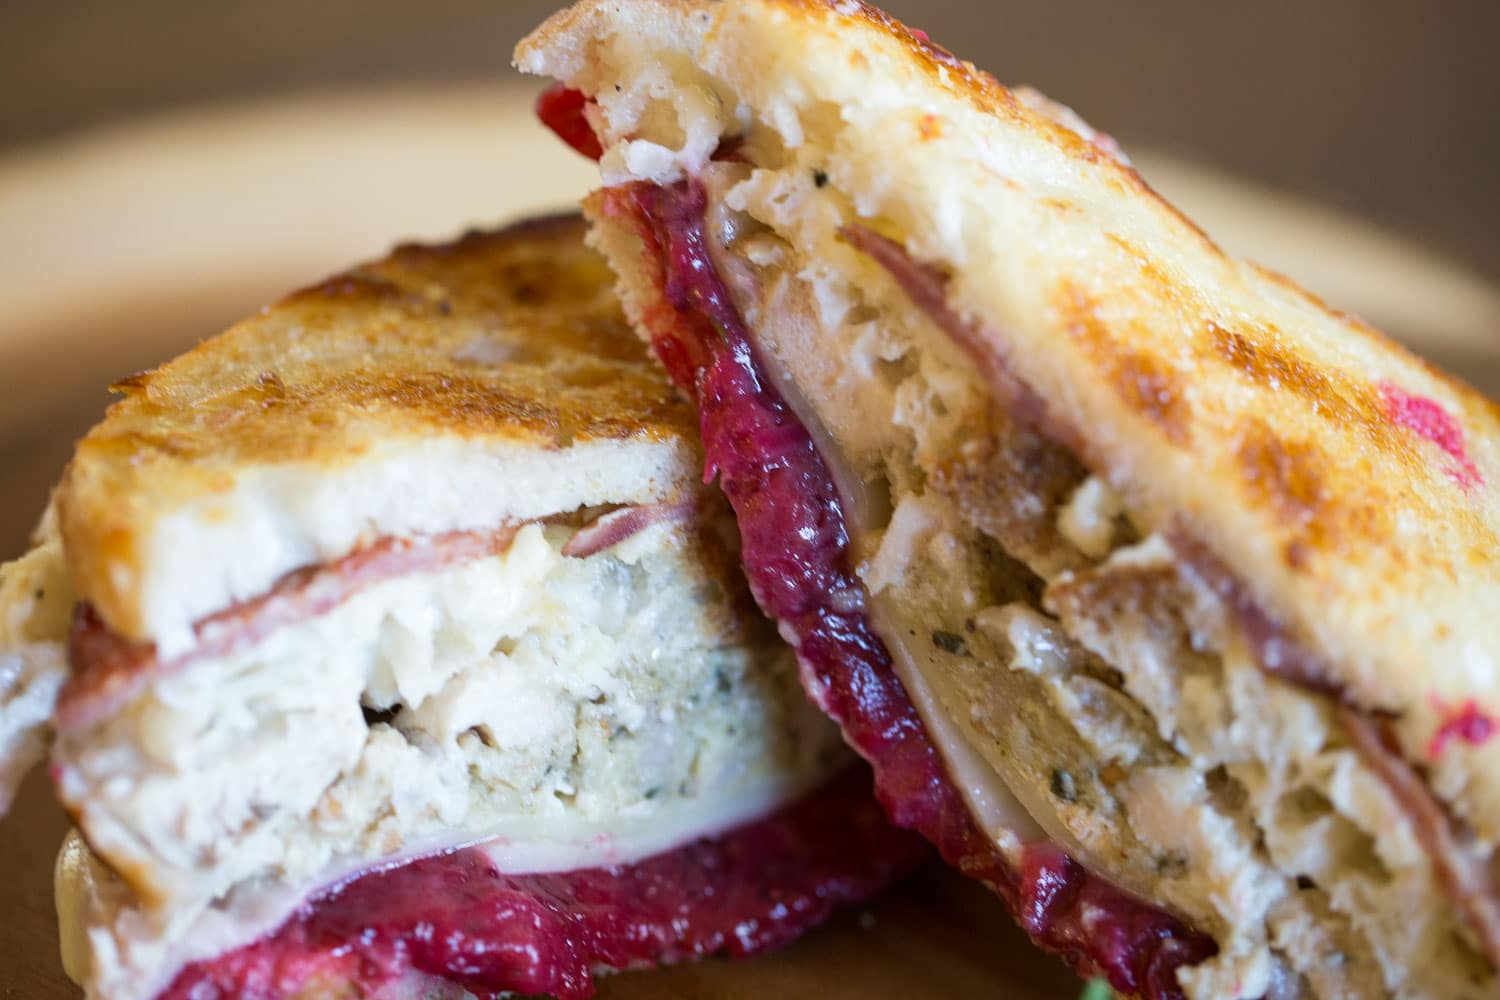 Turn your Thanksgiving leftovers into a tasty gobbler sandwich with a moist maker! |artzyfoodie.com|